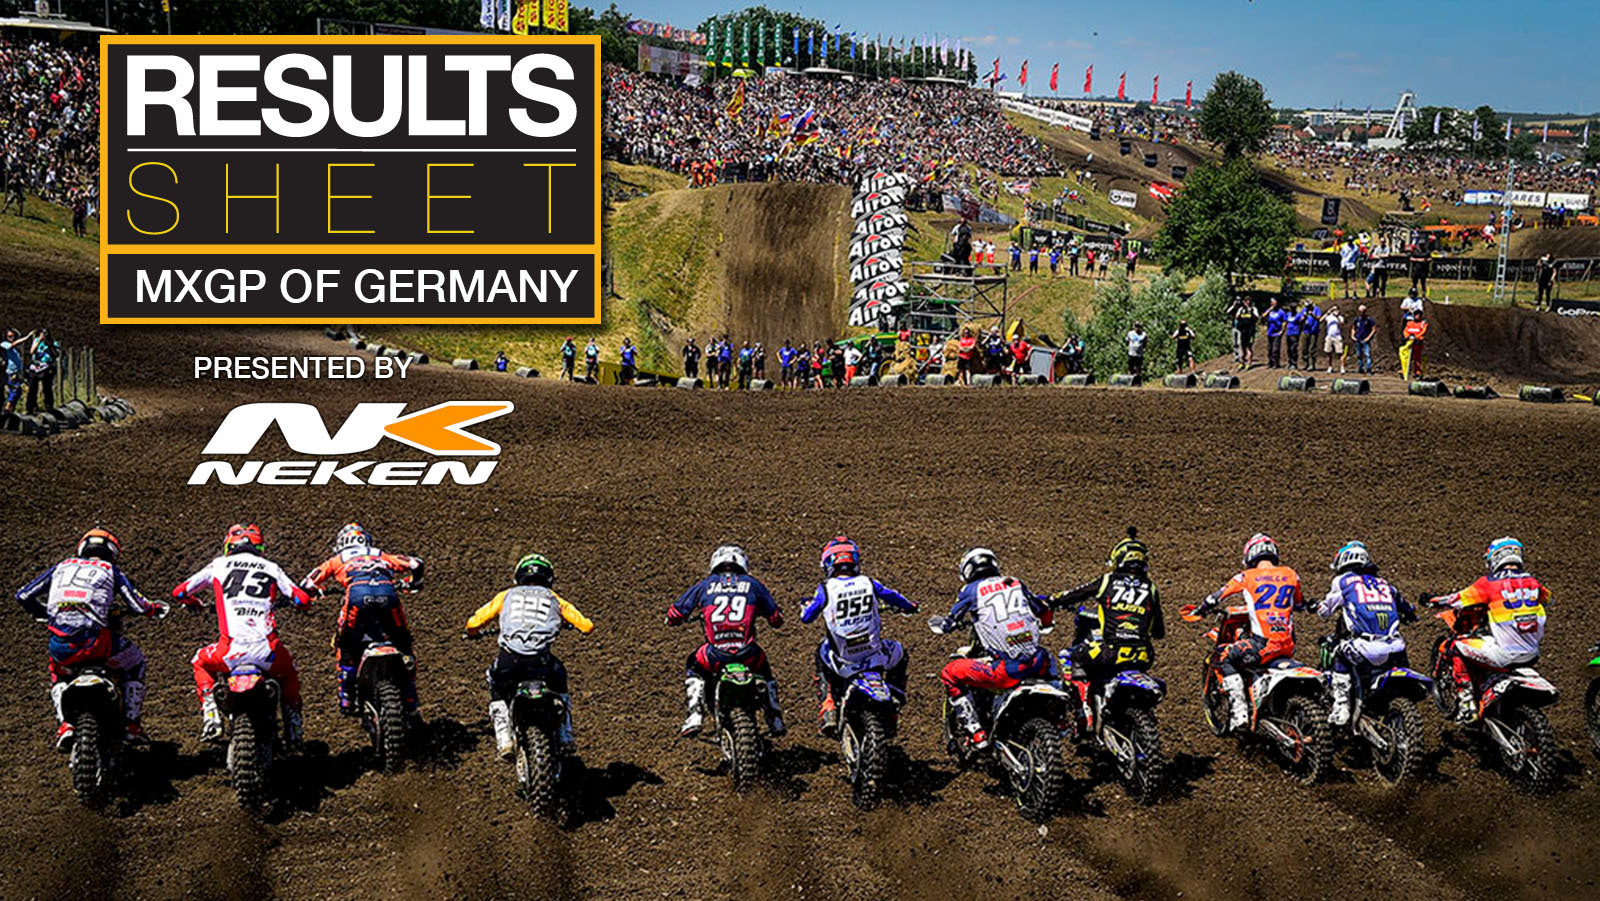 Results Sheet: 2021 MXGP of Germany